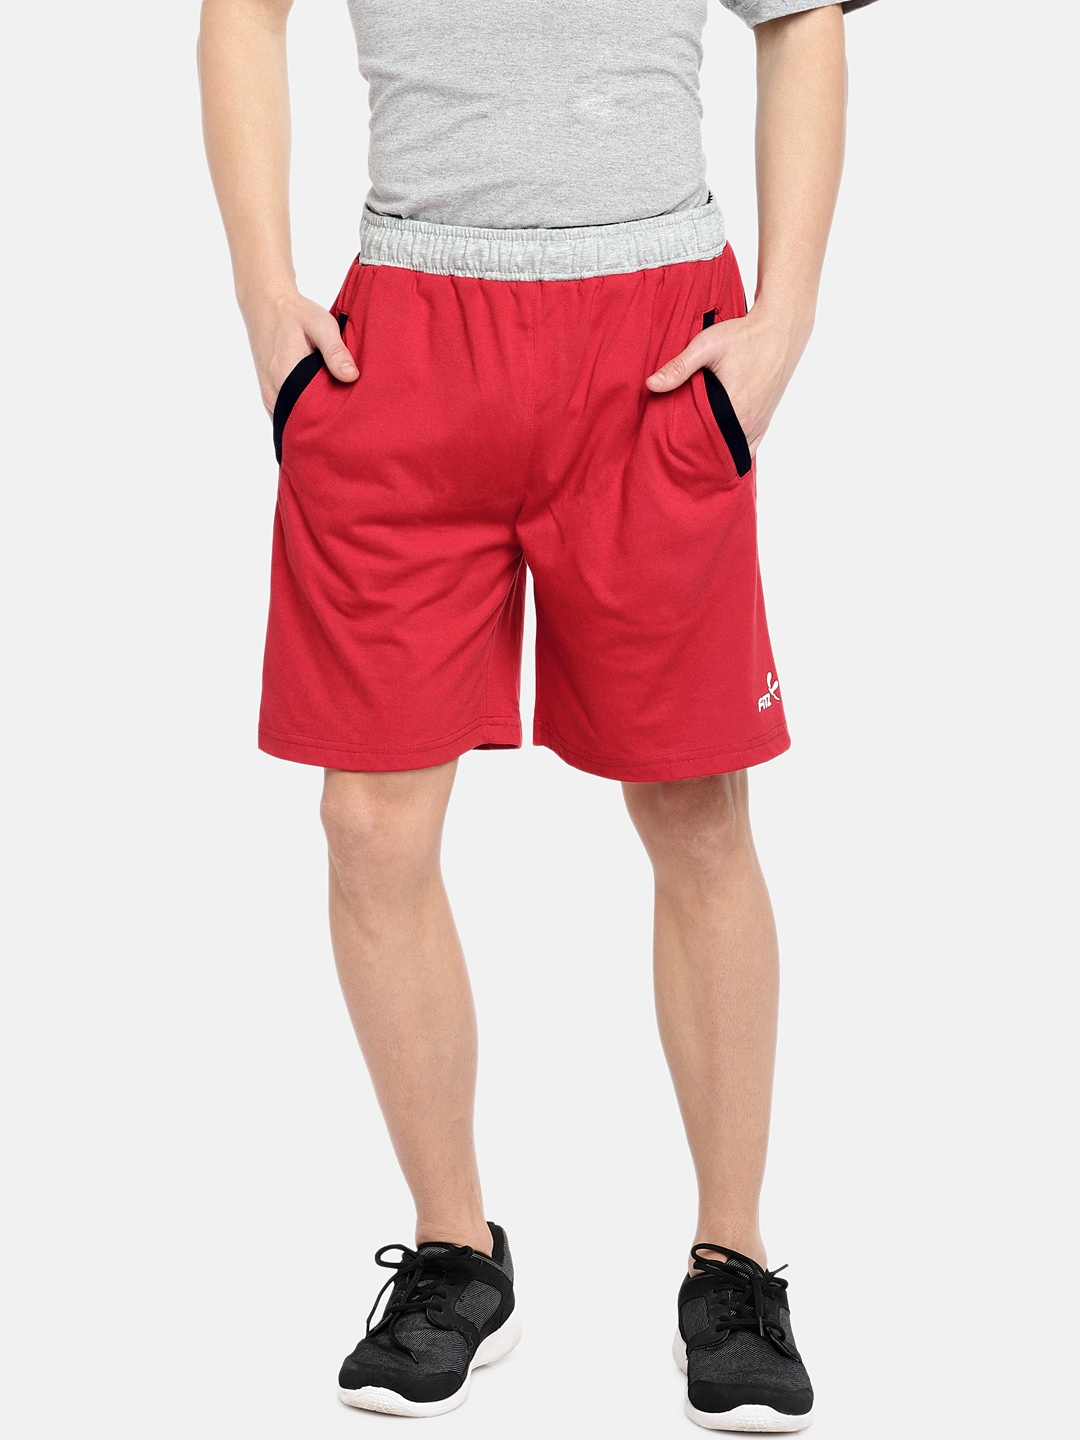 885ab4dc4eb7 Red Shorts - Buy Red Shorts Online in India